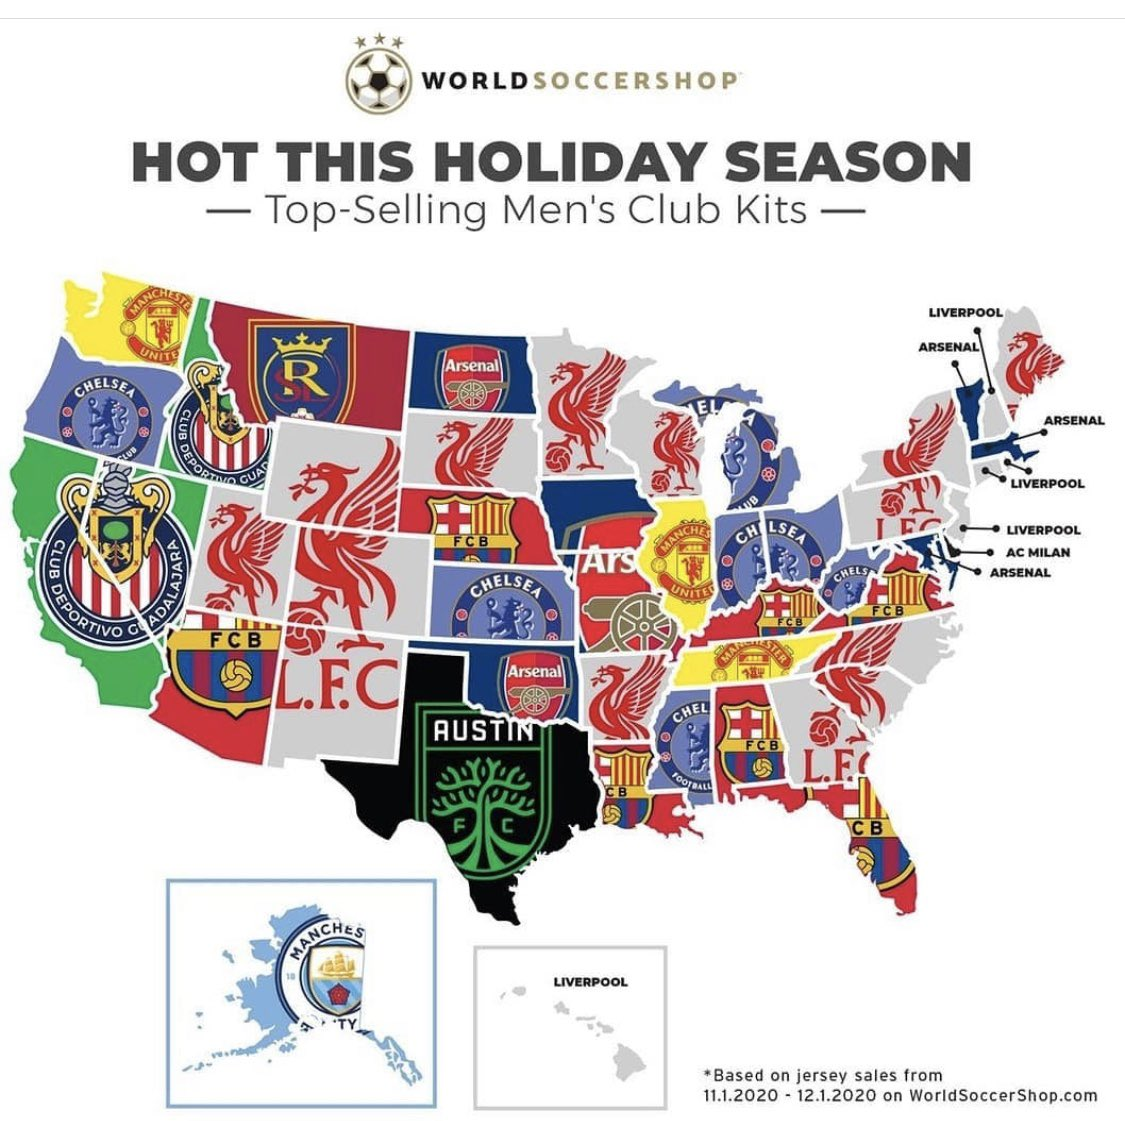 Struggling to find Spurs on this USA map anywhere!!!